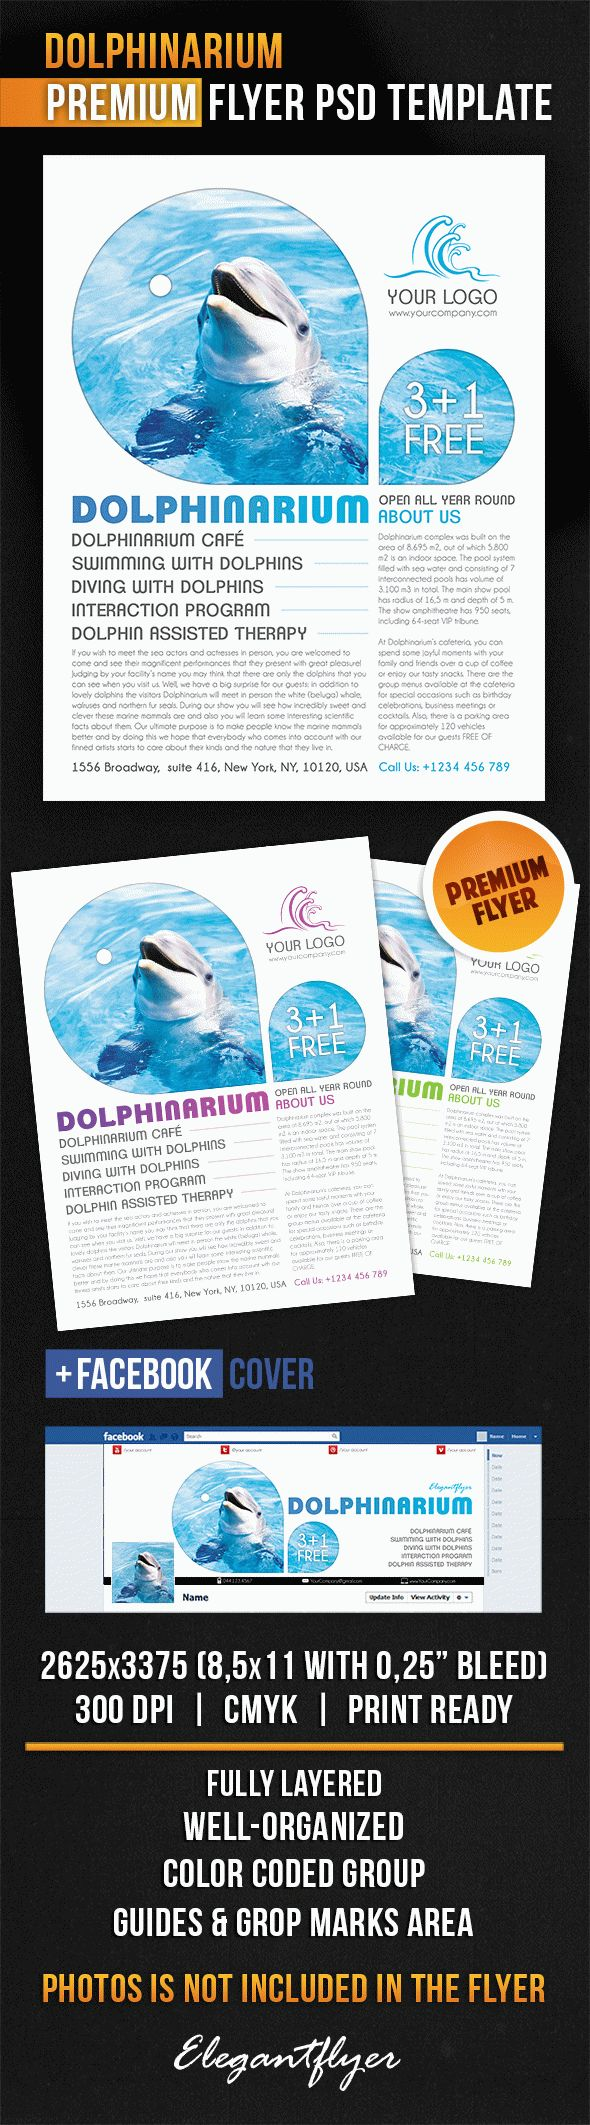 Dolphinarium – Flyer PSD Template + Facebook Cover